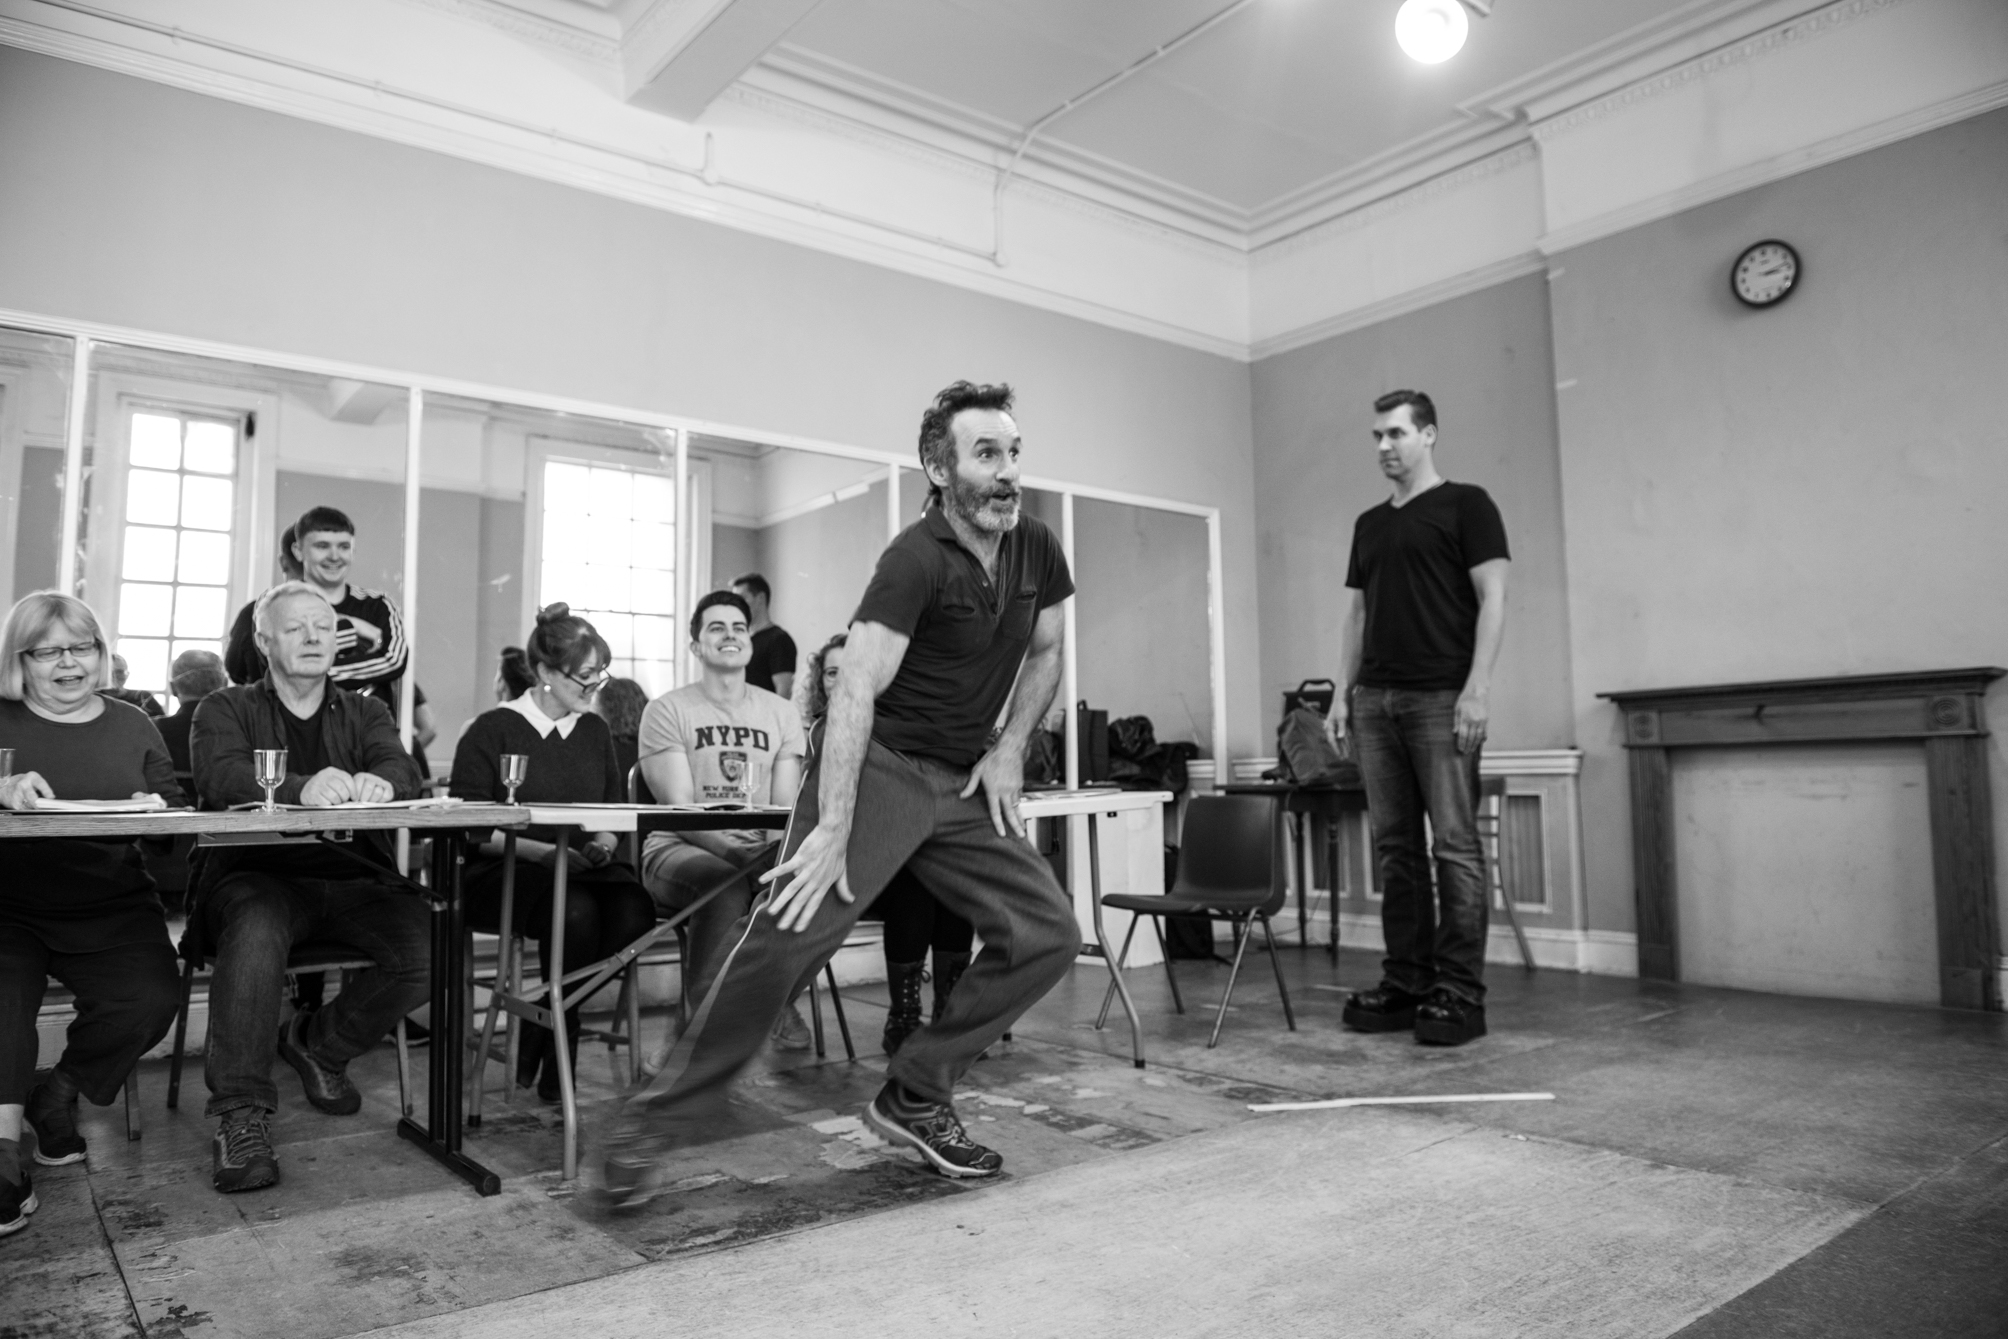 cameron-blakely-in-addams-family-rehearsals_credit-craig-sugden-5